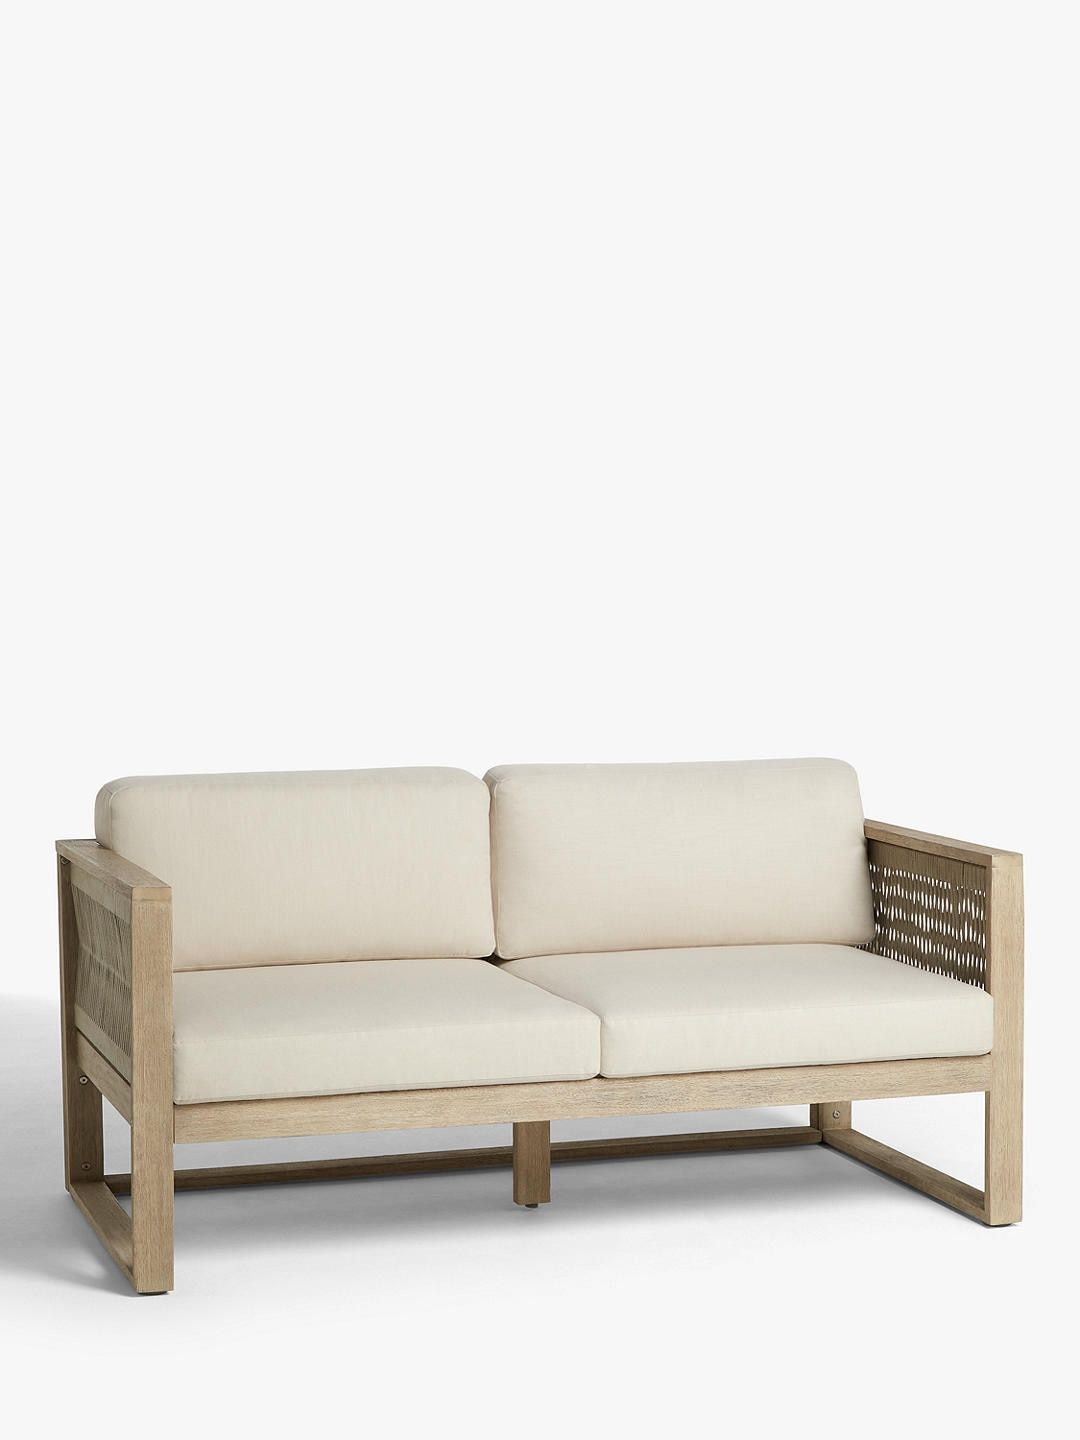 John Lewis Partners St Ives Rope Garden 2 Seat Sofa With Cushions Fsc Certified Eucalyptus Wood Natural Seating Outdoor Furniture Material Outdoor Seating Areas